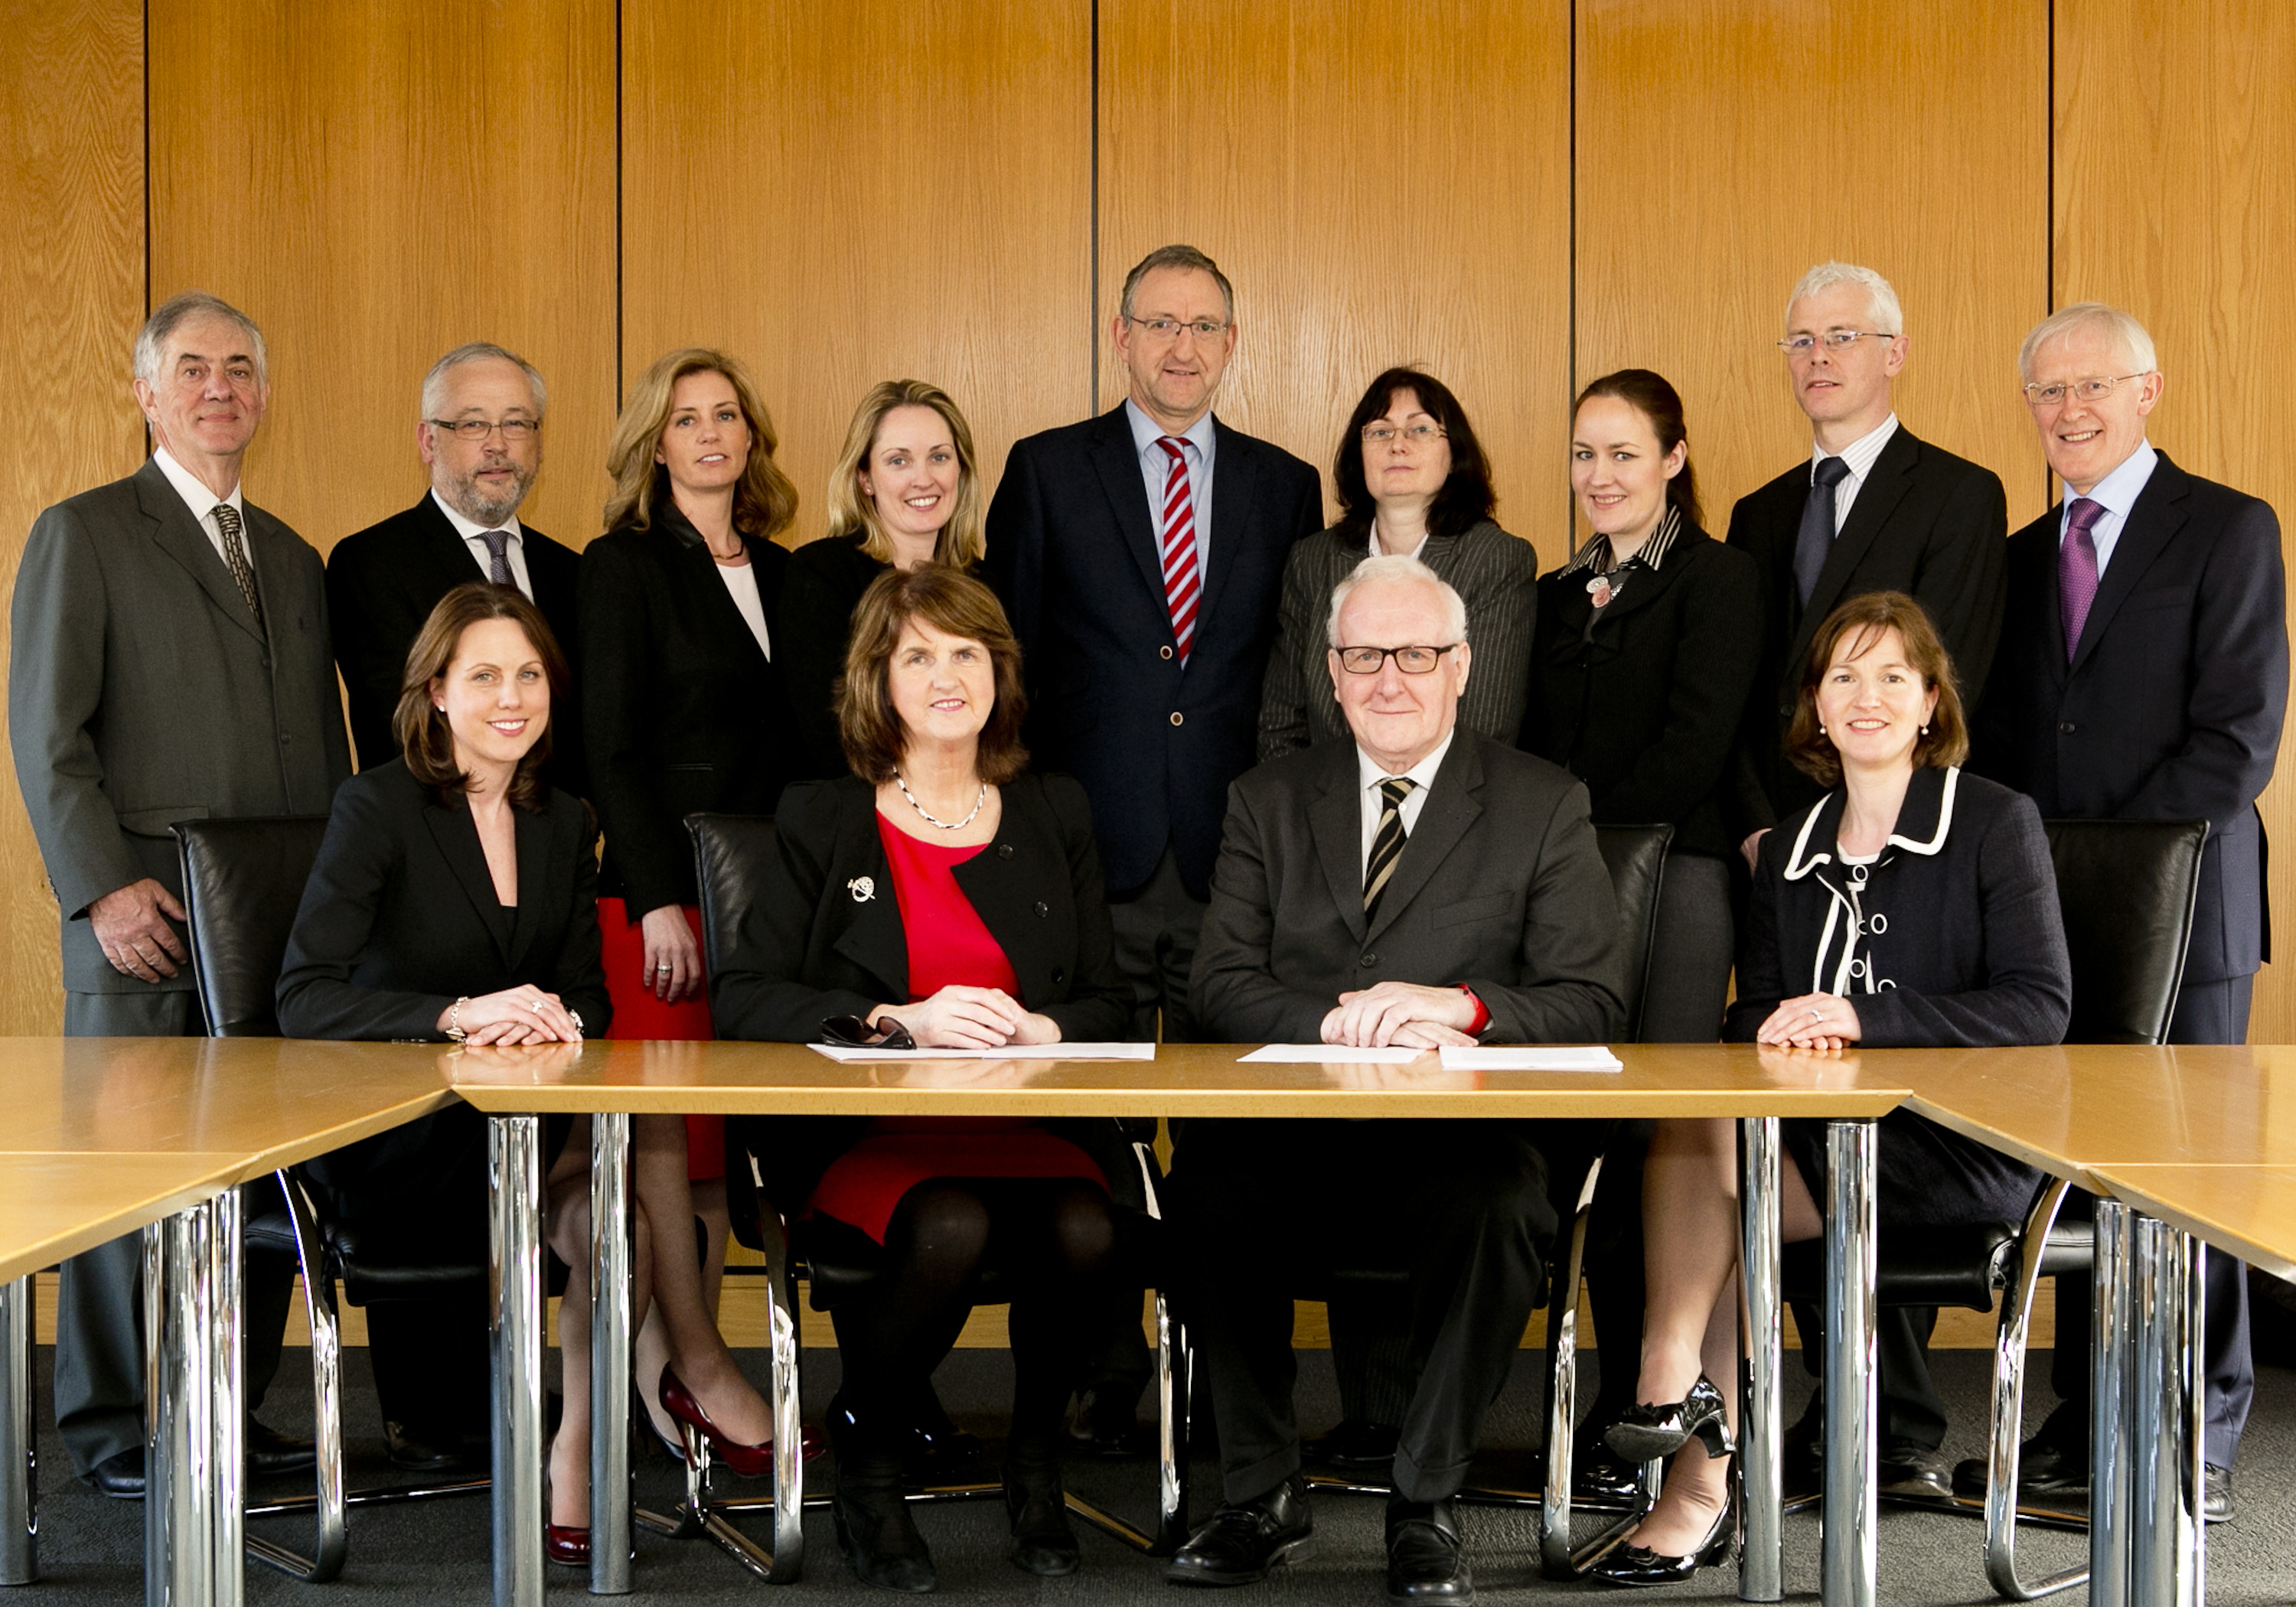 Pensions Council photo